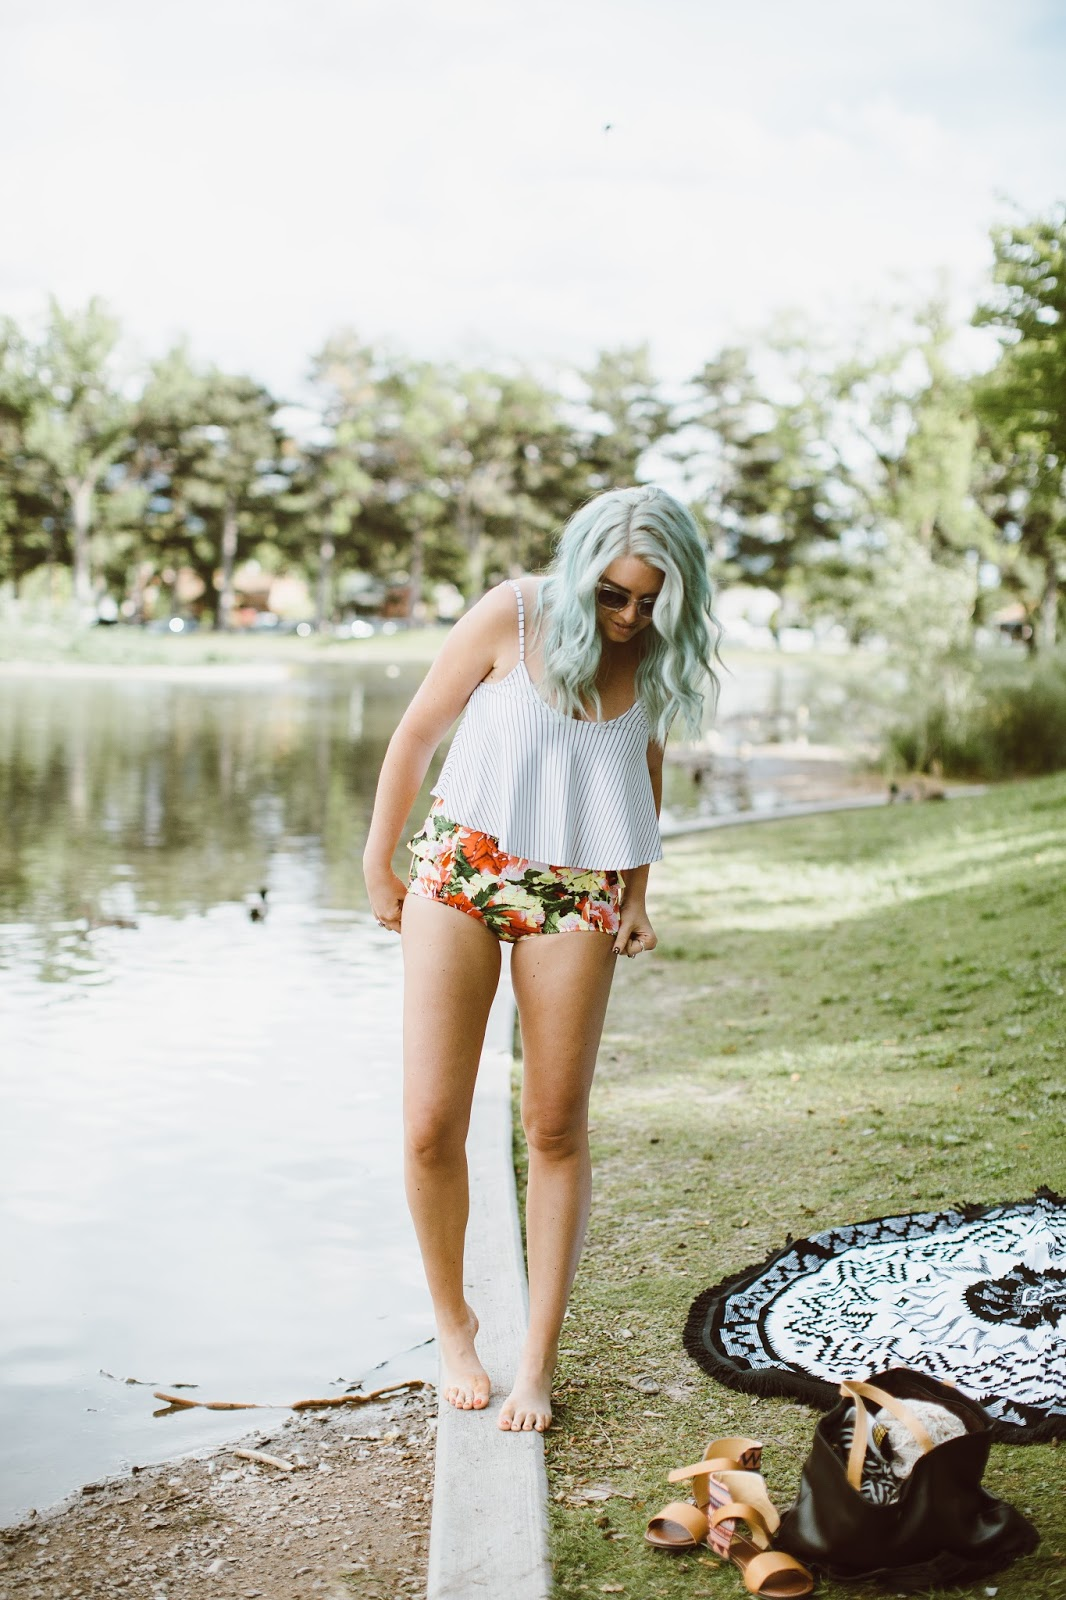 Kortni Jeane, Modest Fashion blogger, Swimsuit